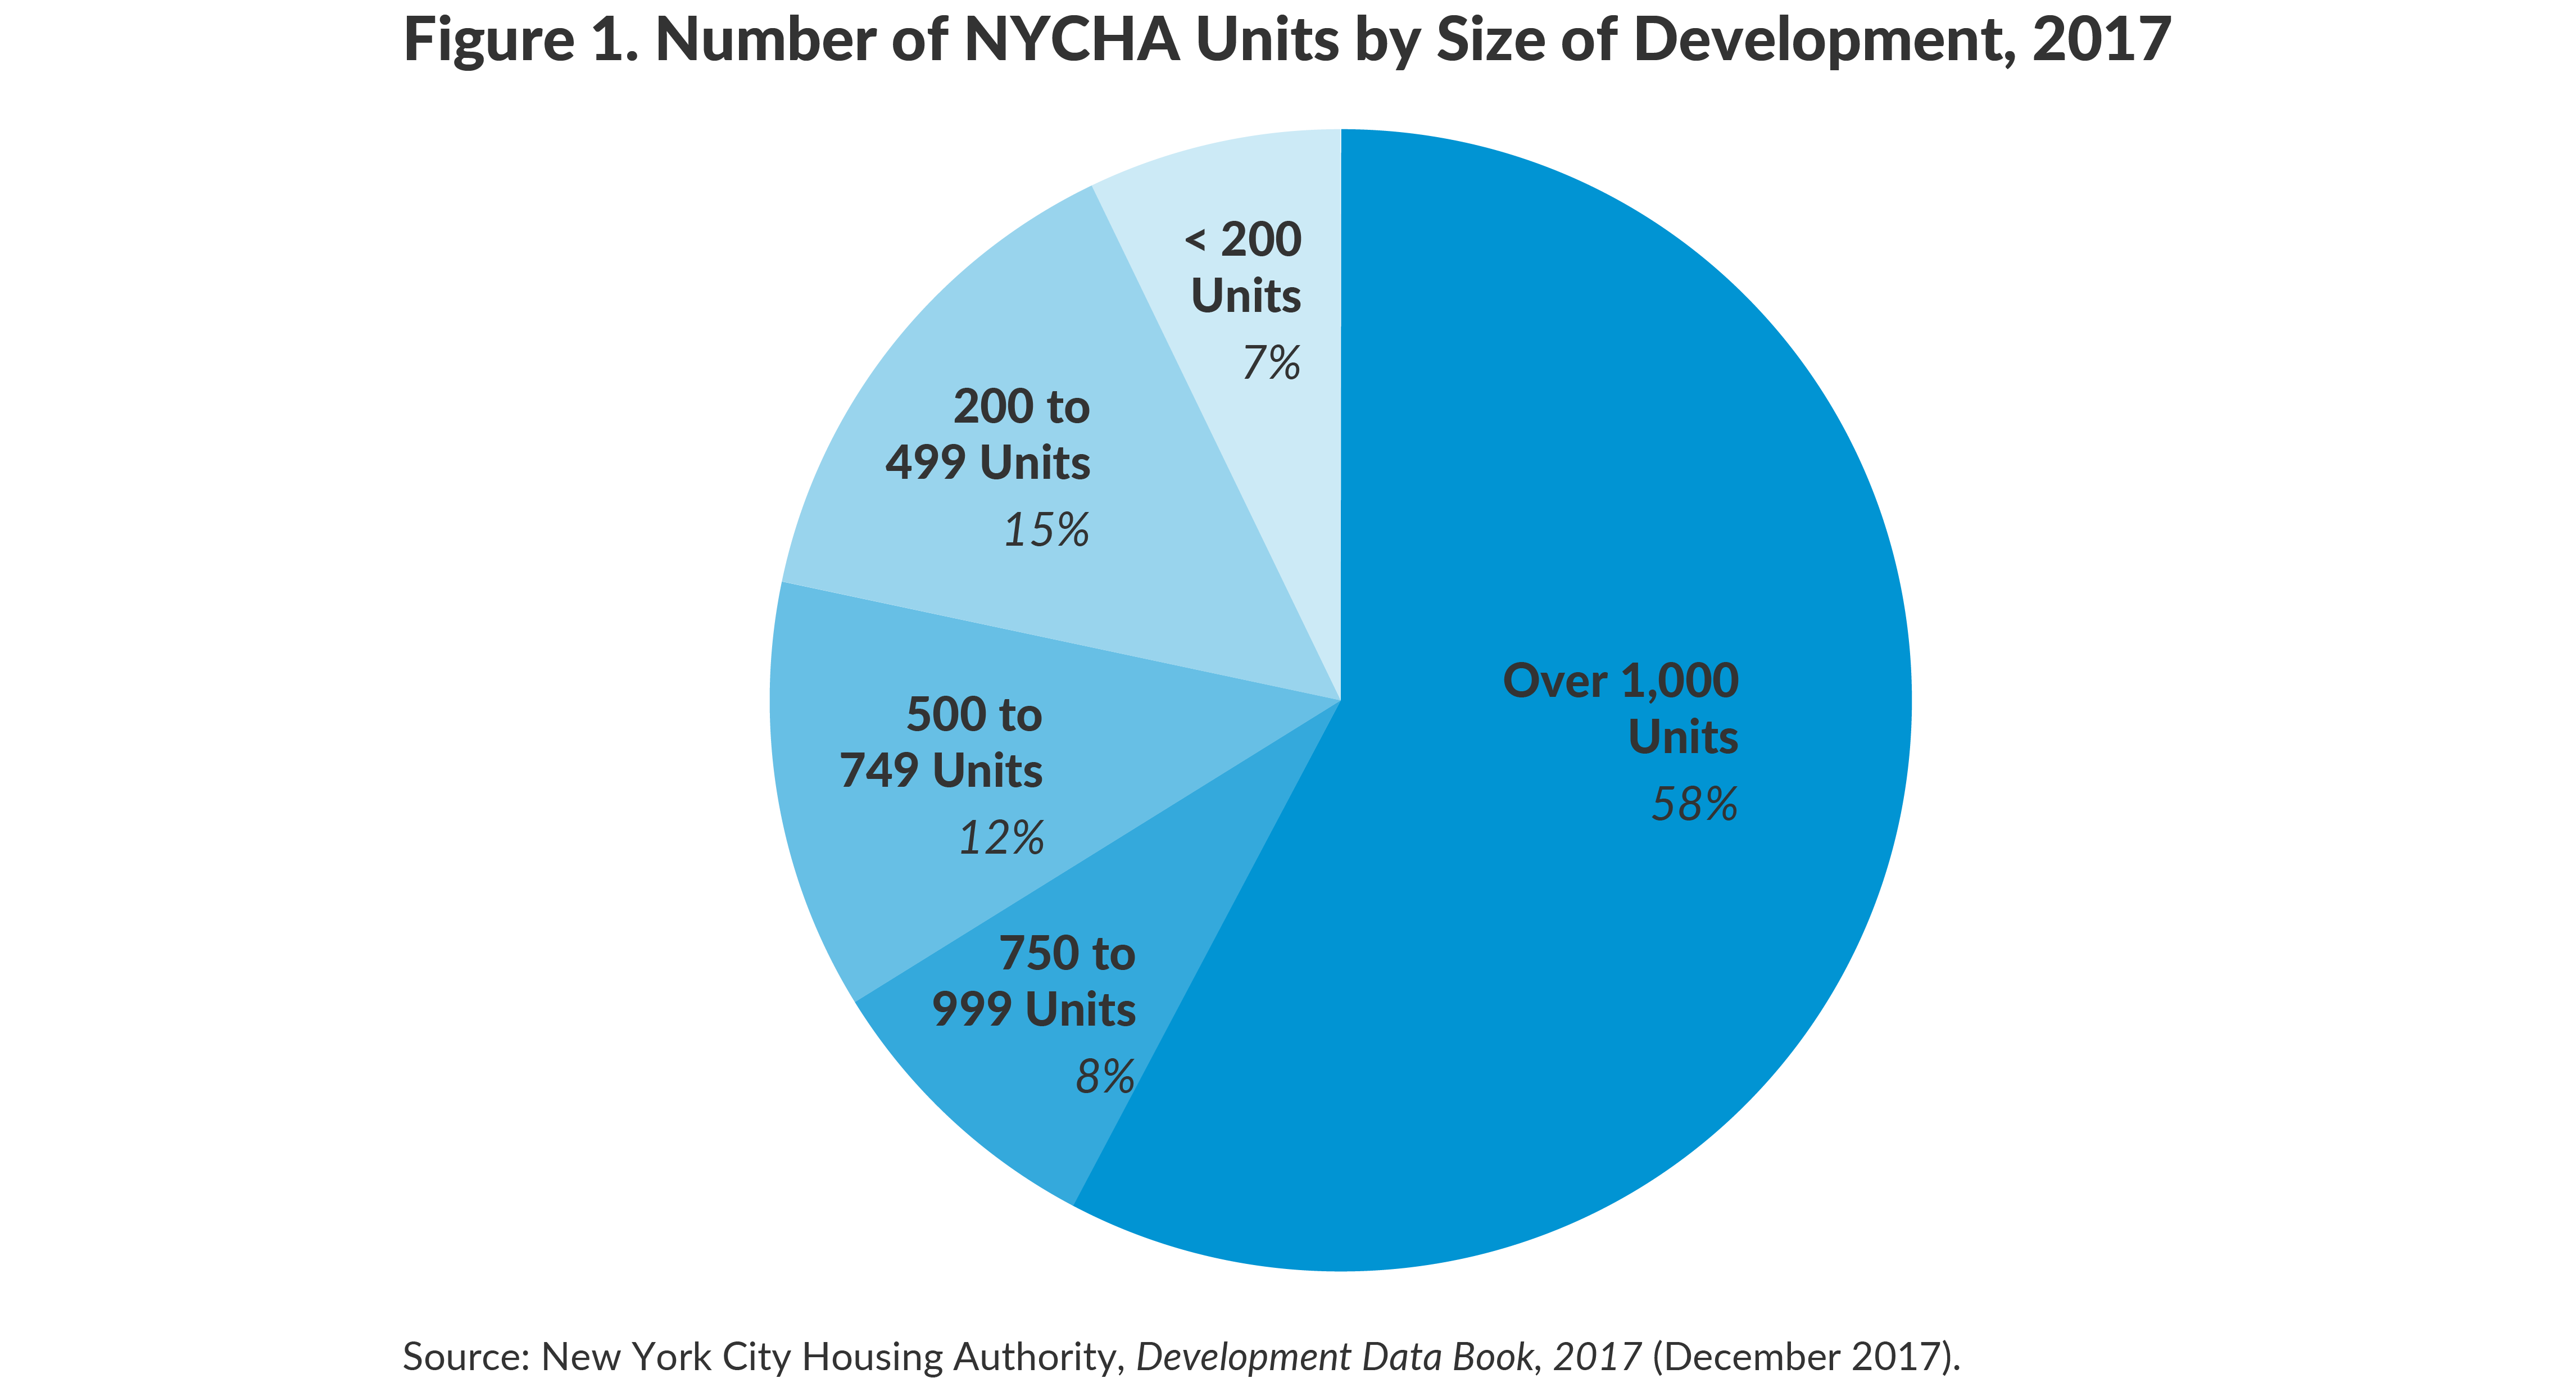 Figure 1. Number of NYCHA Units by Size of Development, 2017